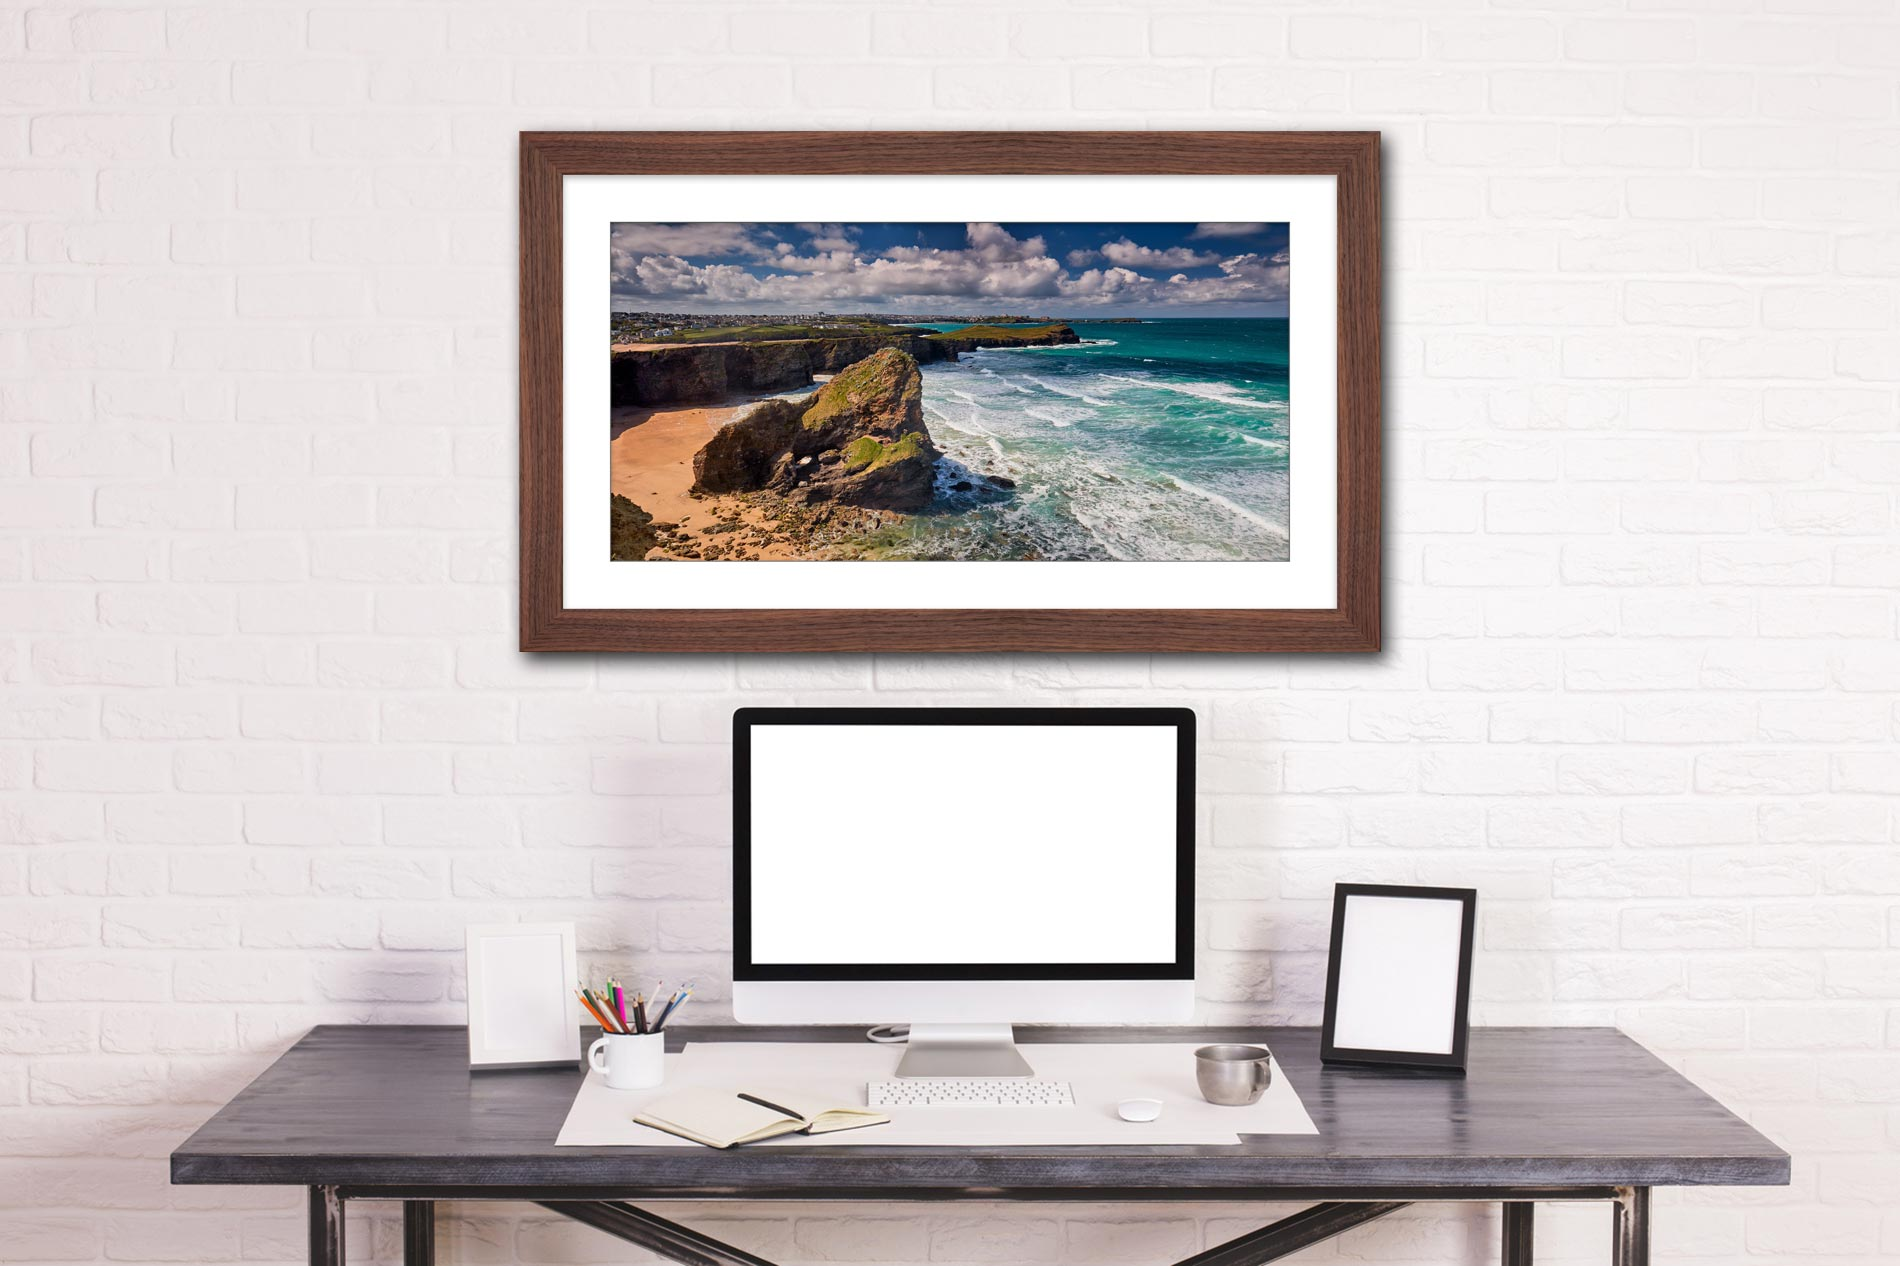 Black Humprey Rock - Framed Print with Mount on Wall